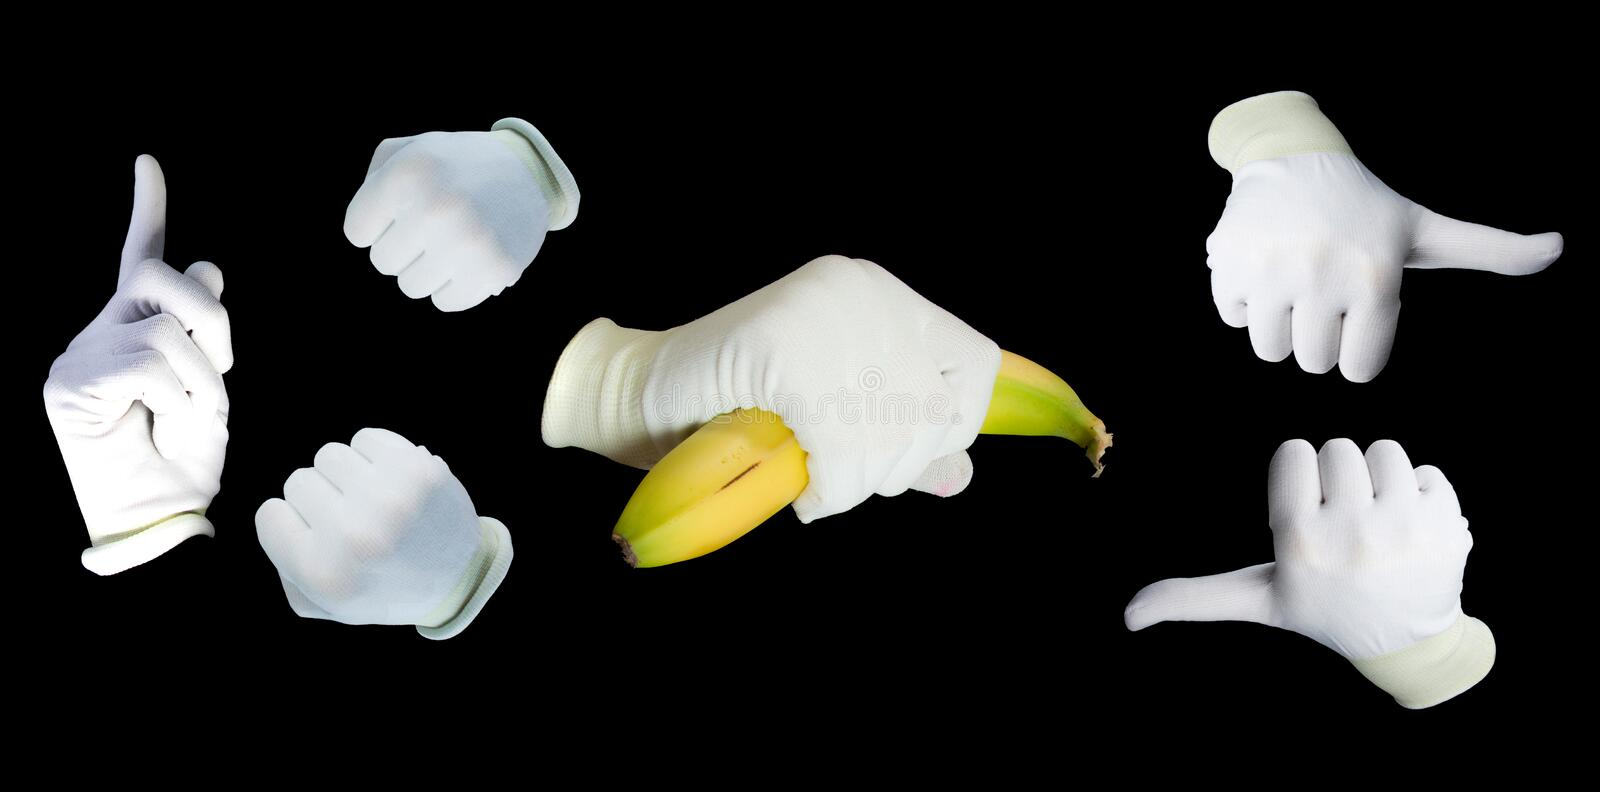 Set of hands wearing white gloves stock photo